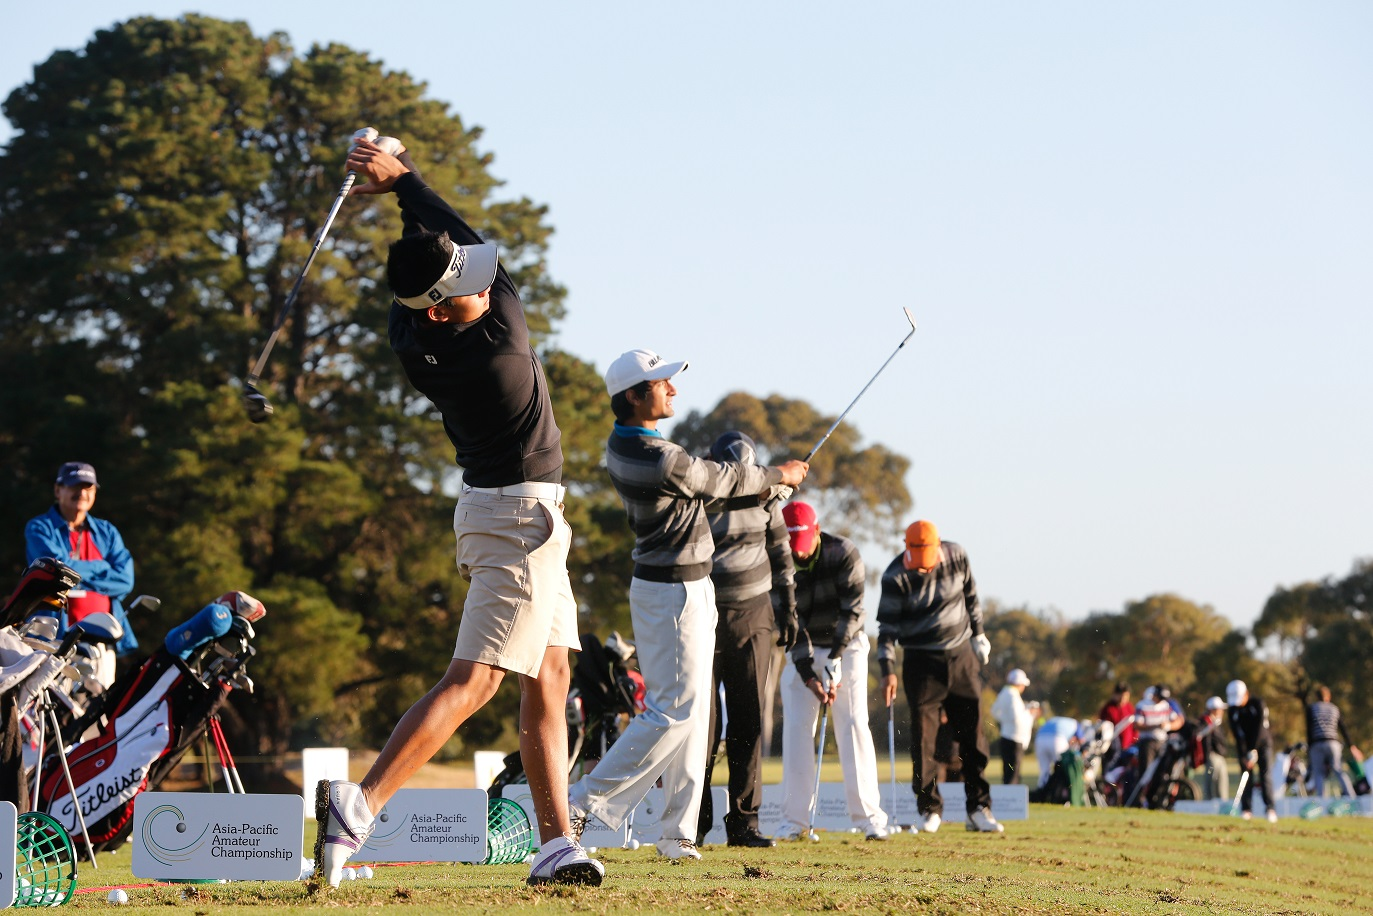 Melbourne, Australia: Golfers warm up on the range prior to their practice round at the Asia Pacific Amateur Championship at the Royal Melbourne Golf Club ) on October 21 2014, (photo by Dave Tease/AAC)